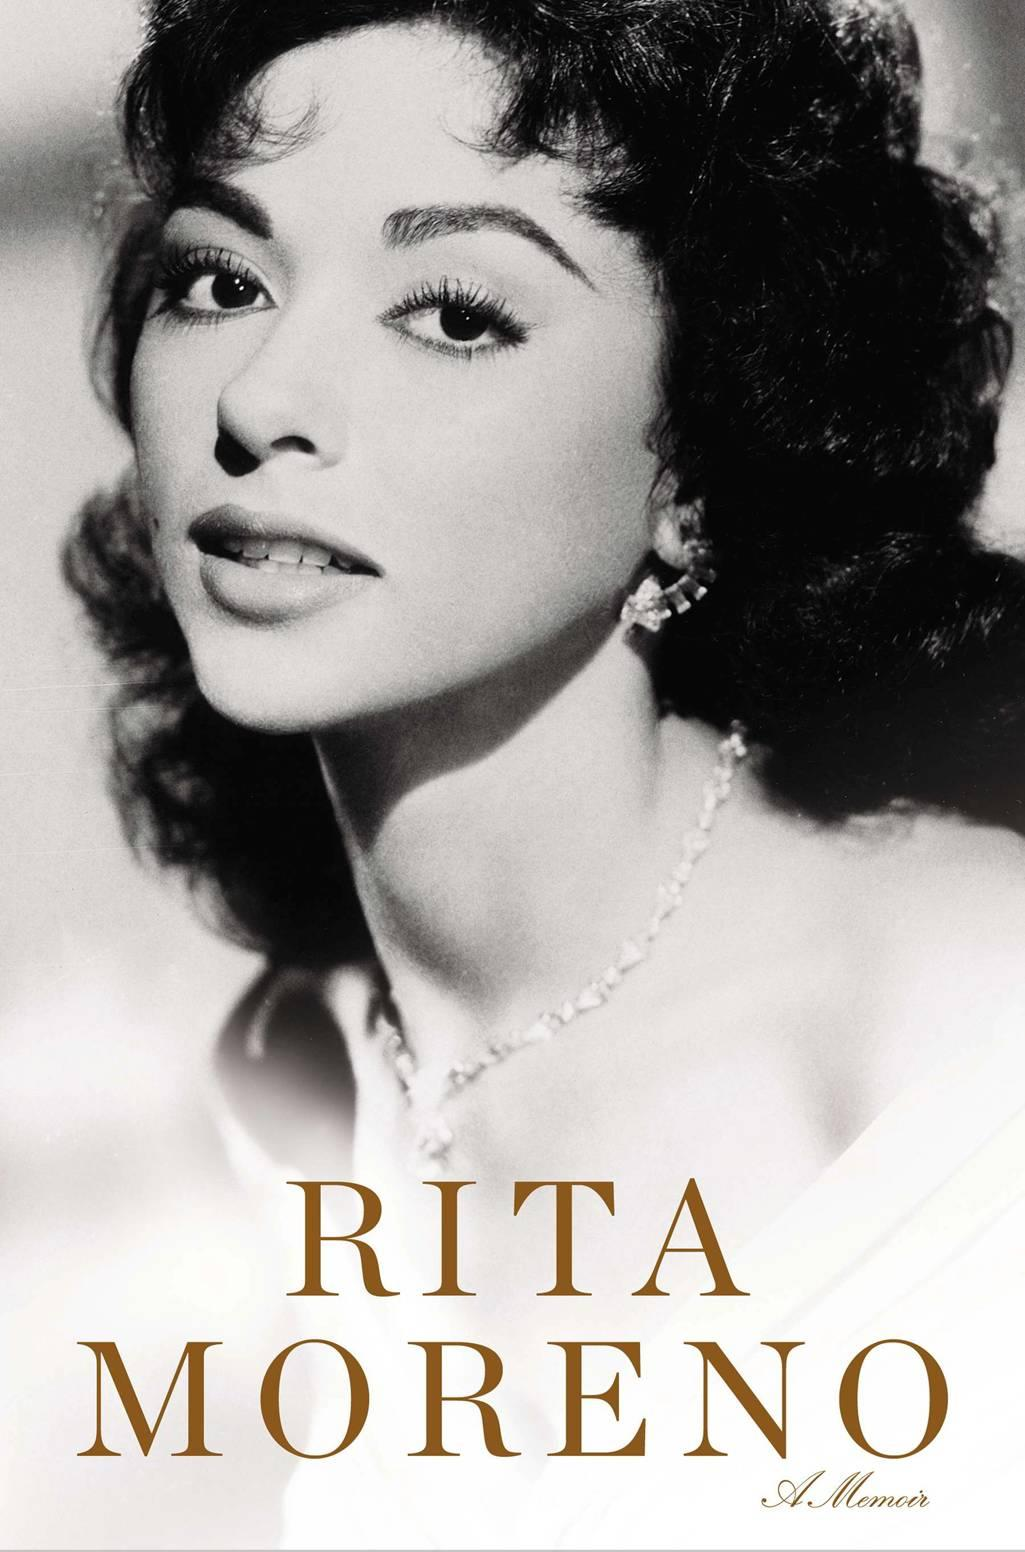 Rita Moreno documentary